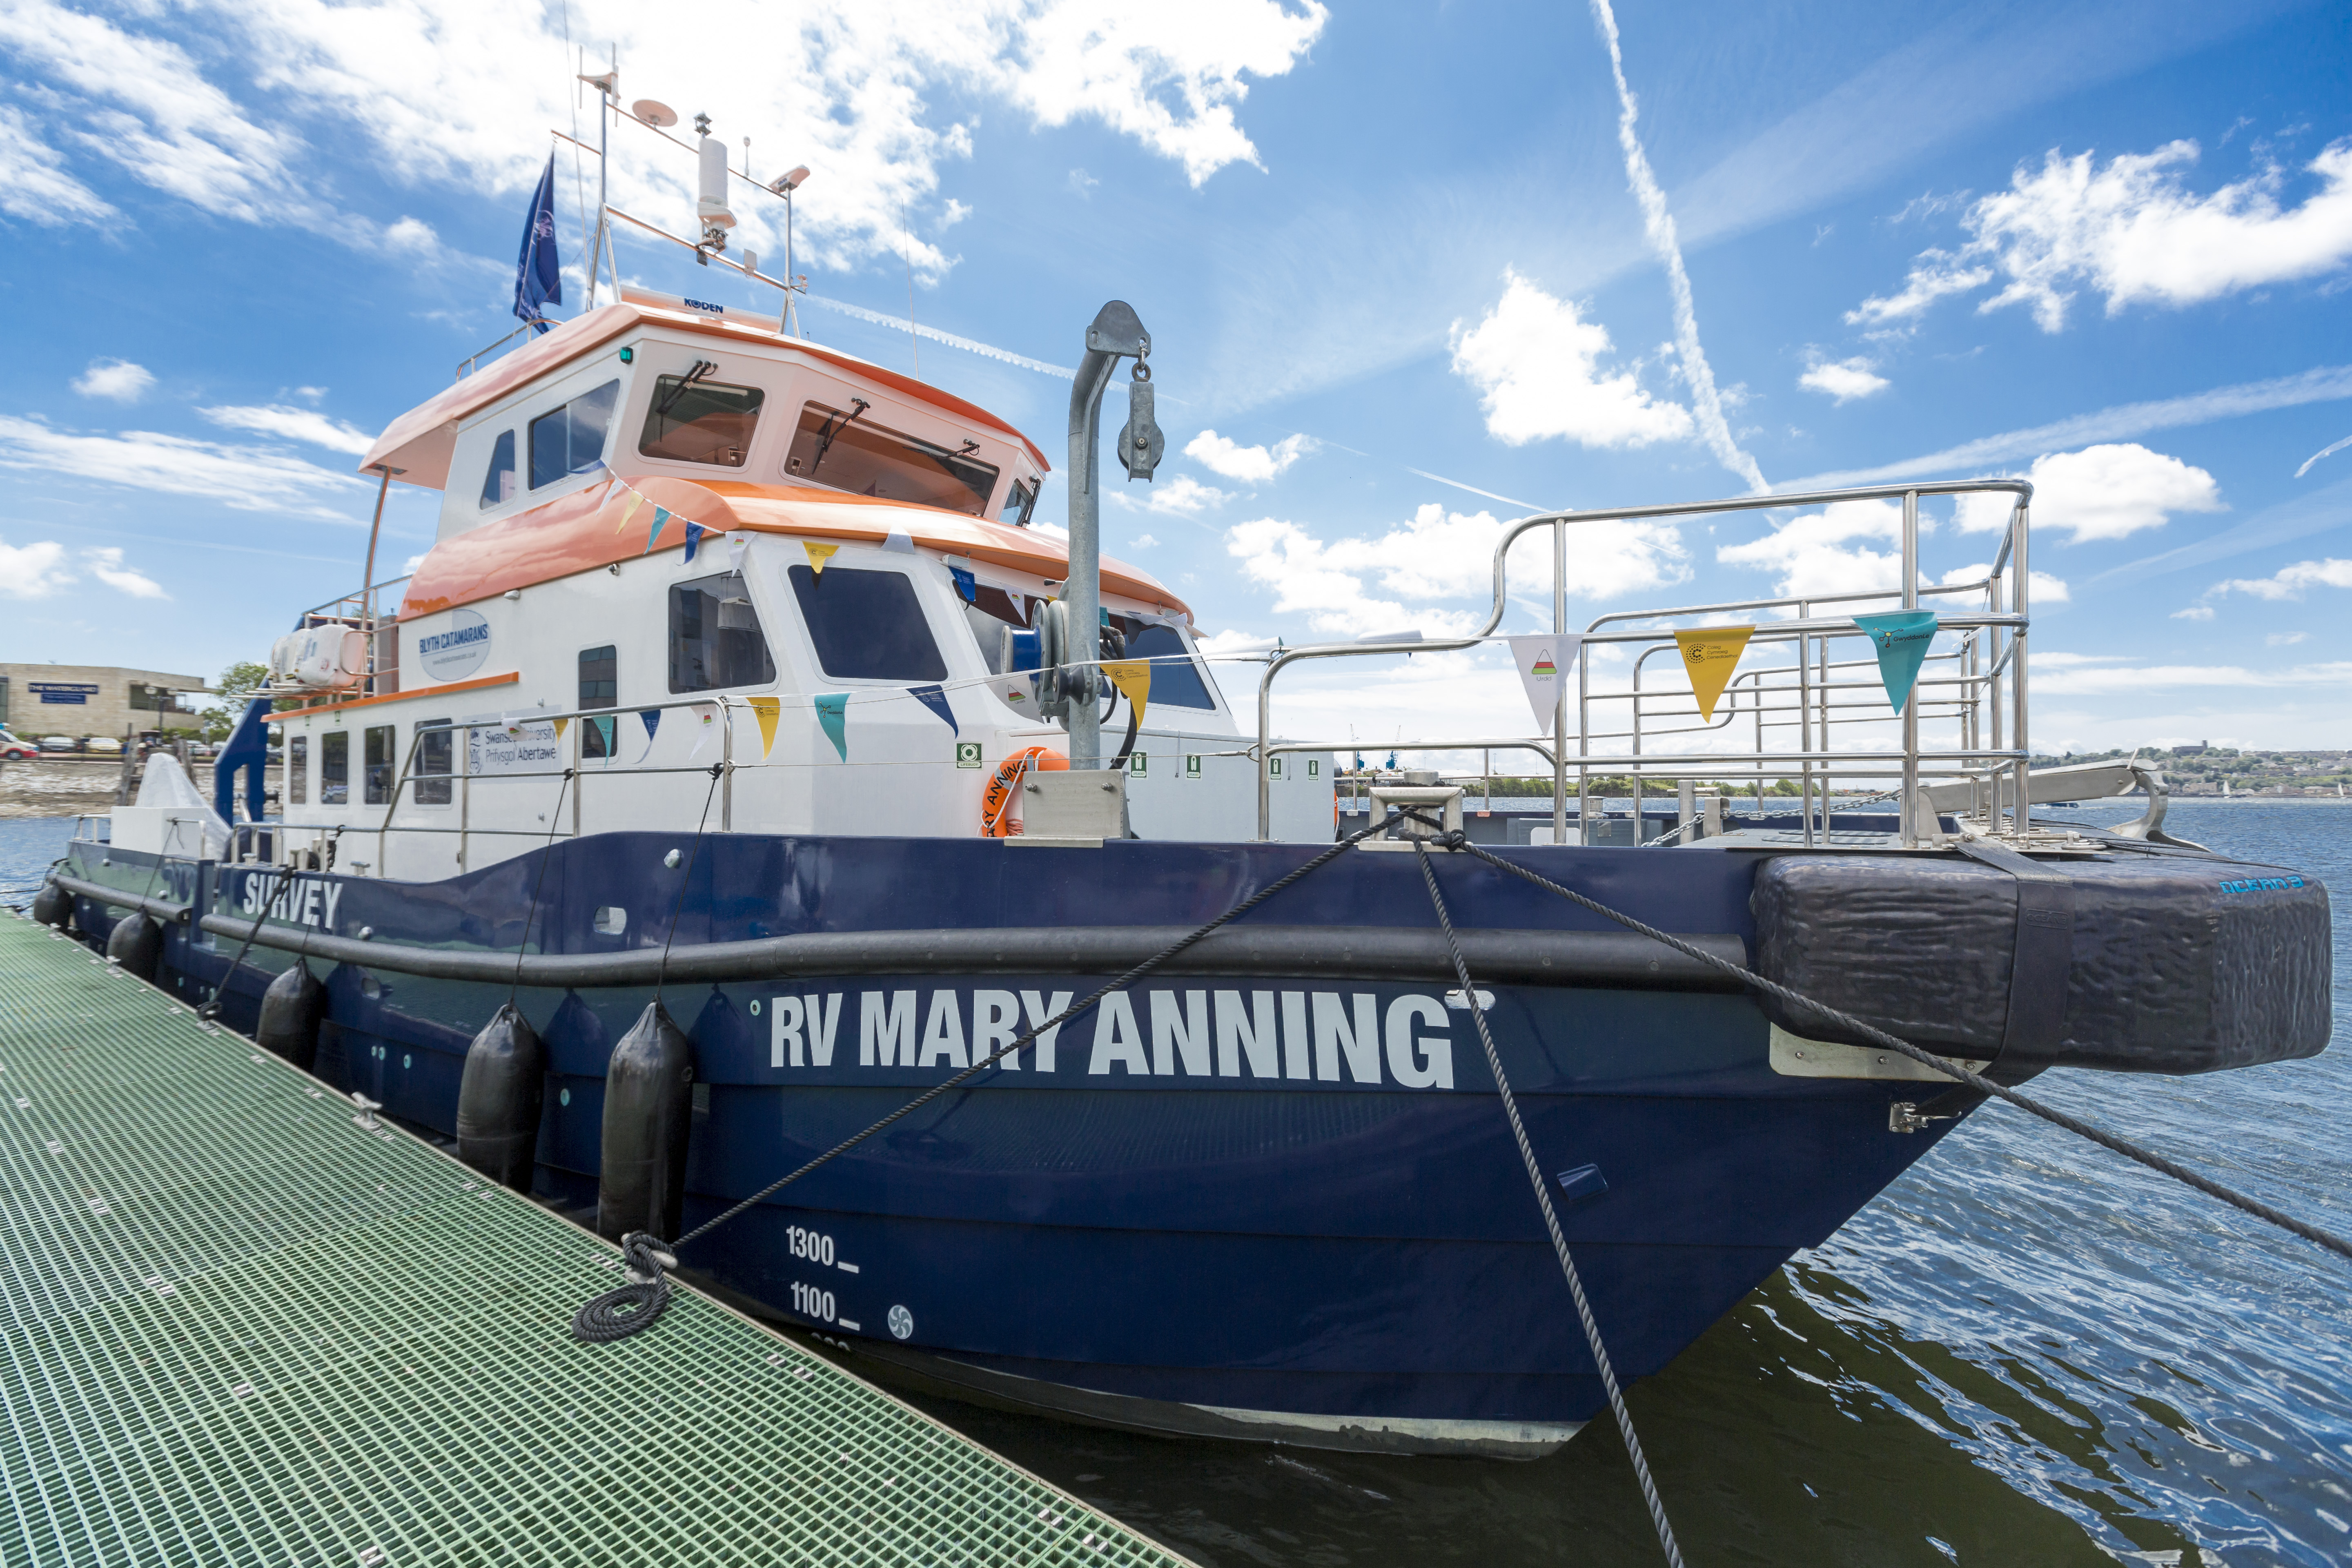 RV Mary Anning